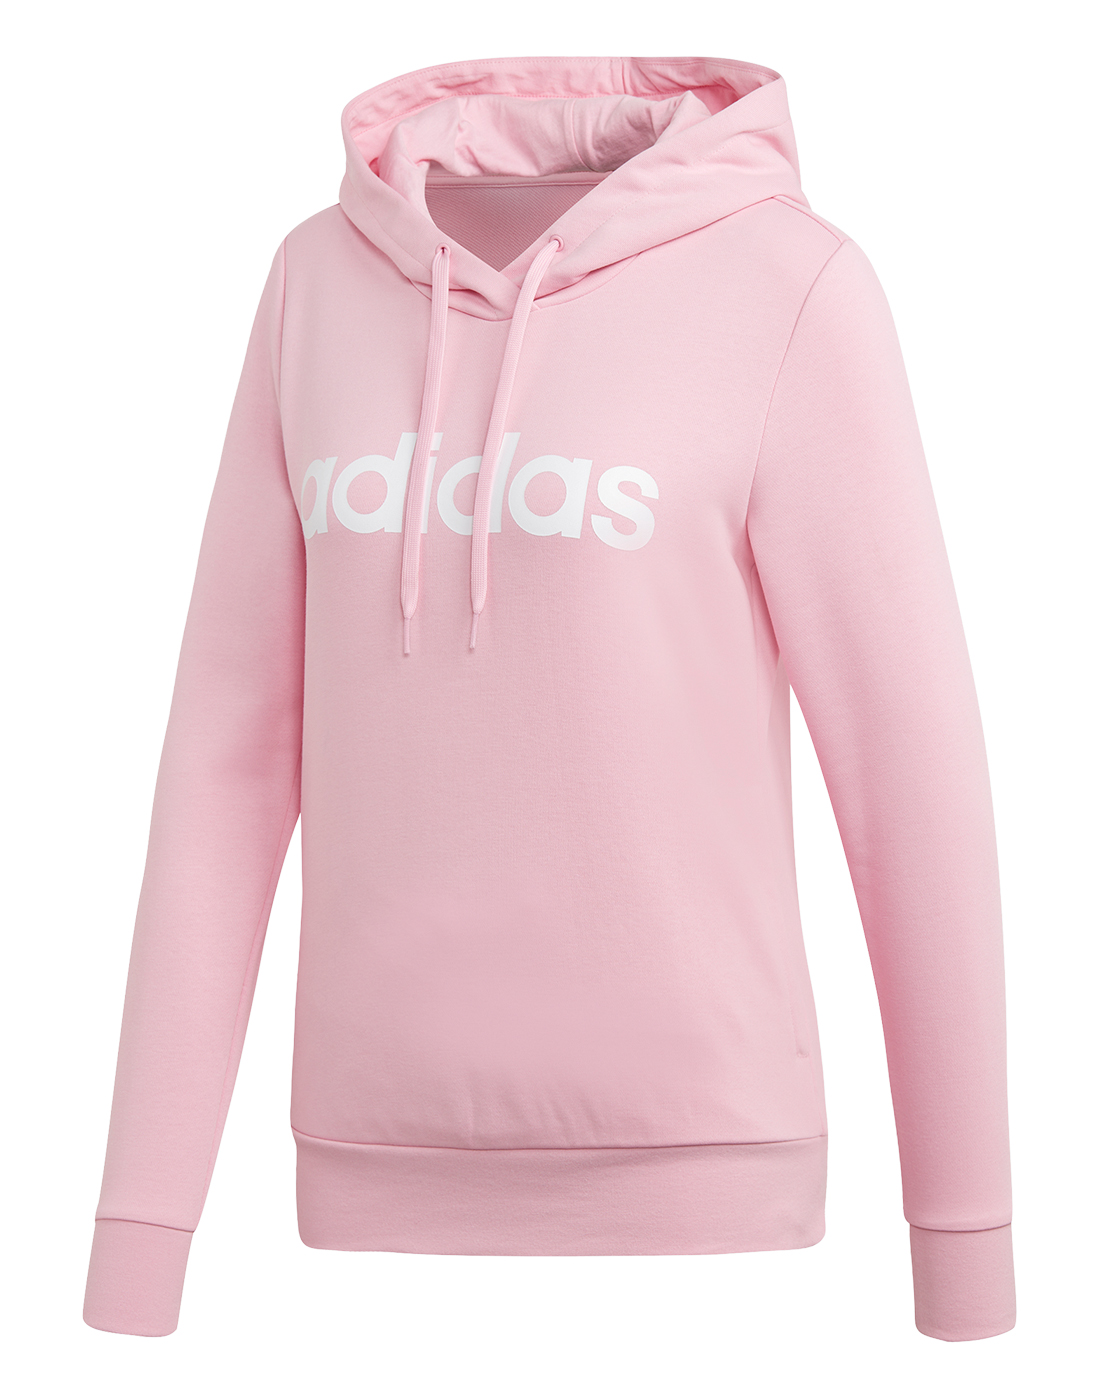 15a3726c903089 Women's Pink adidas Hoodie | Life Style Sports